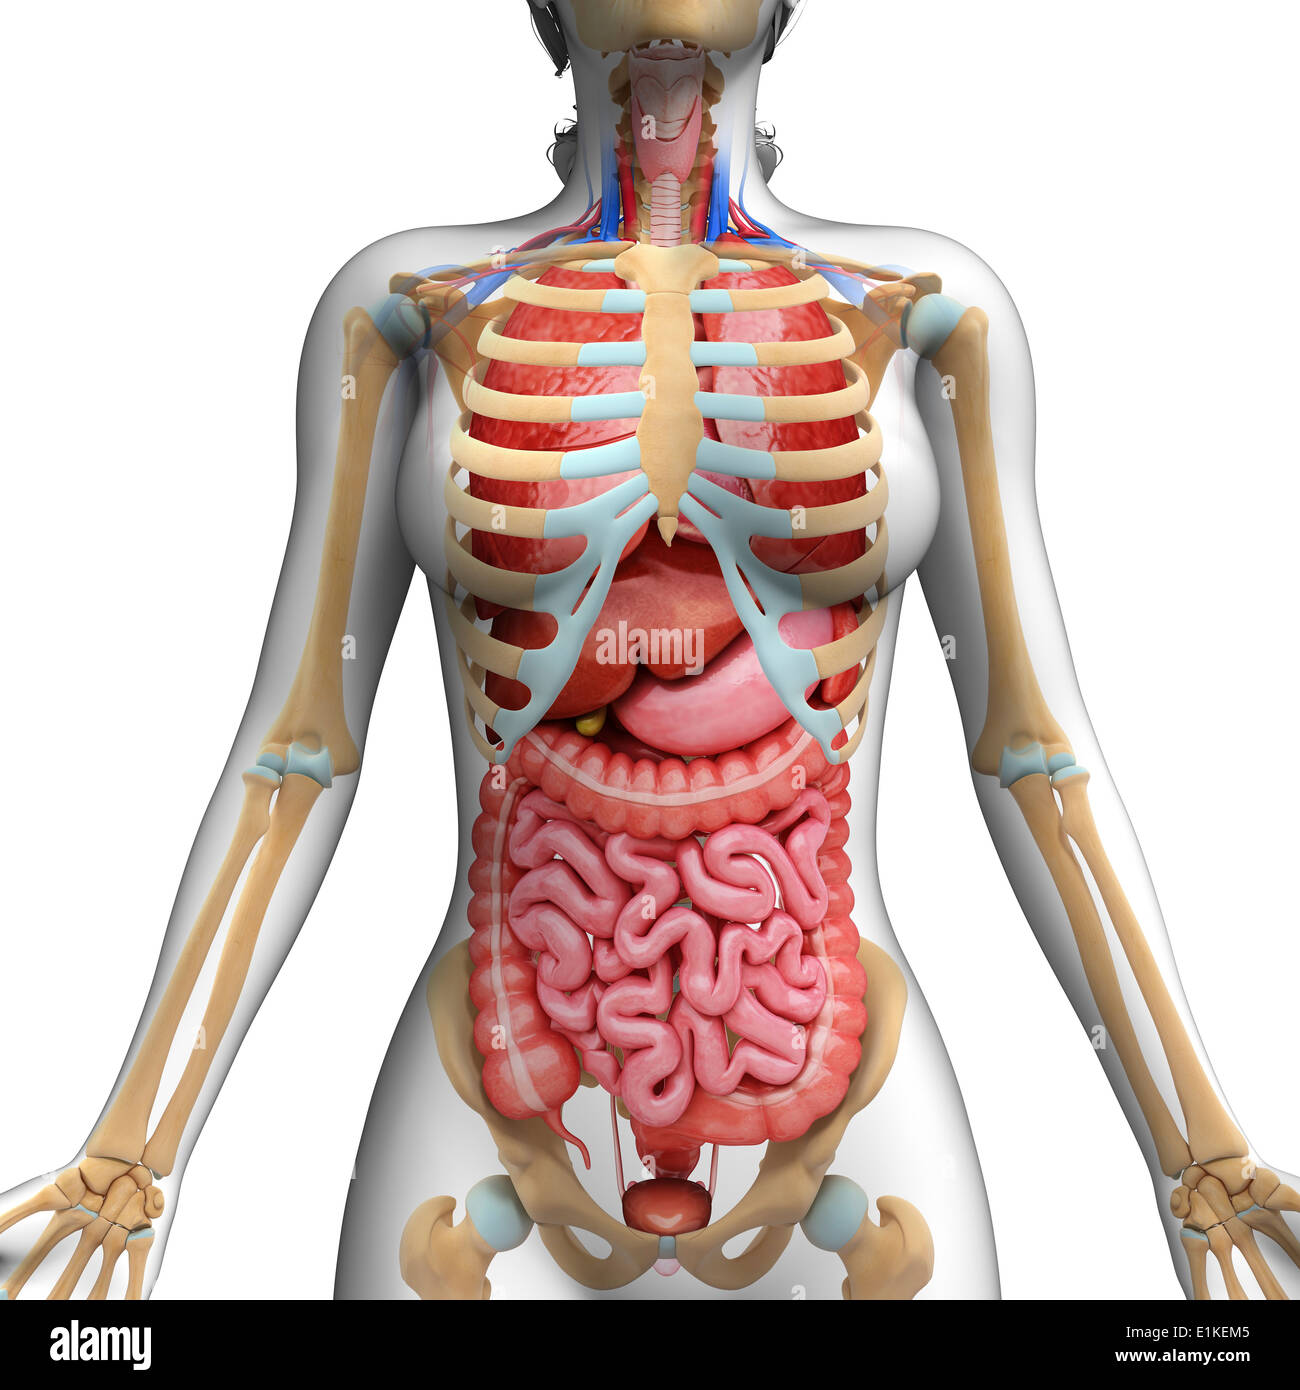 diagram of ribs and organs 2004 chevy impala headlight wiring human digestive system ribcage computer artwork stock photo